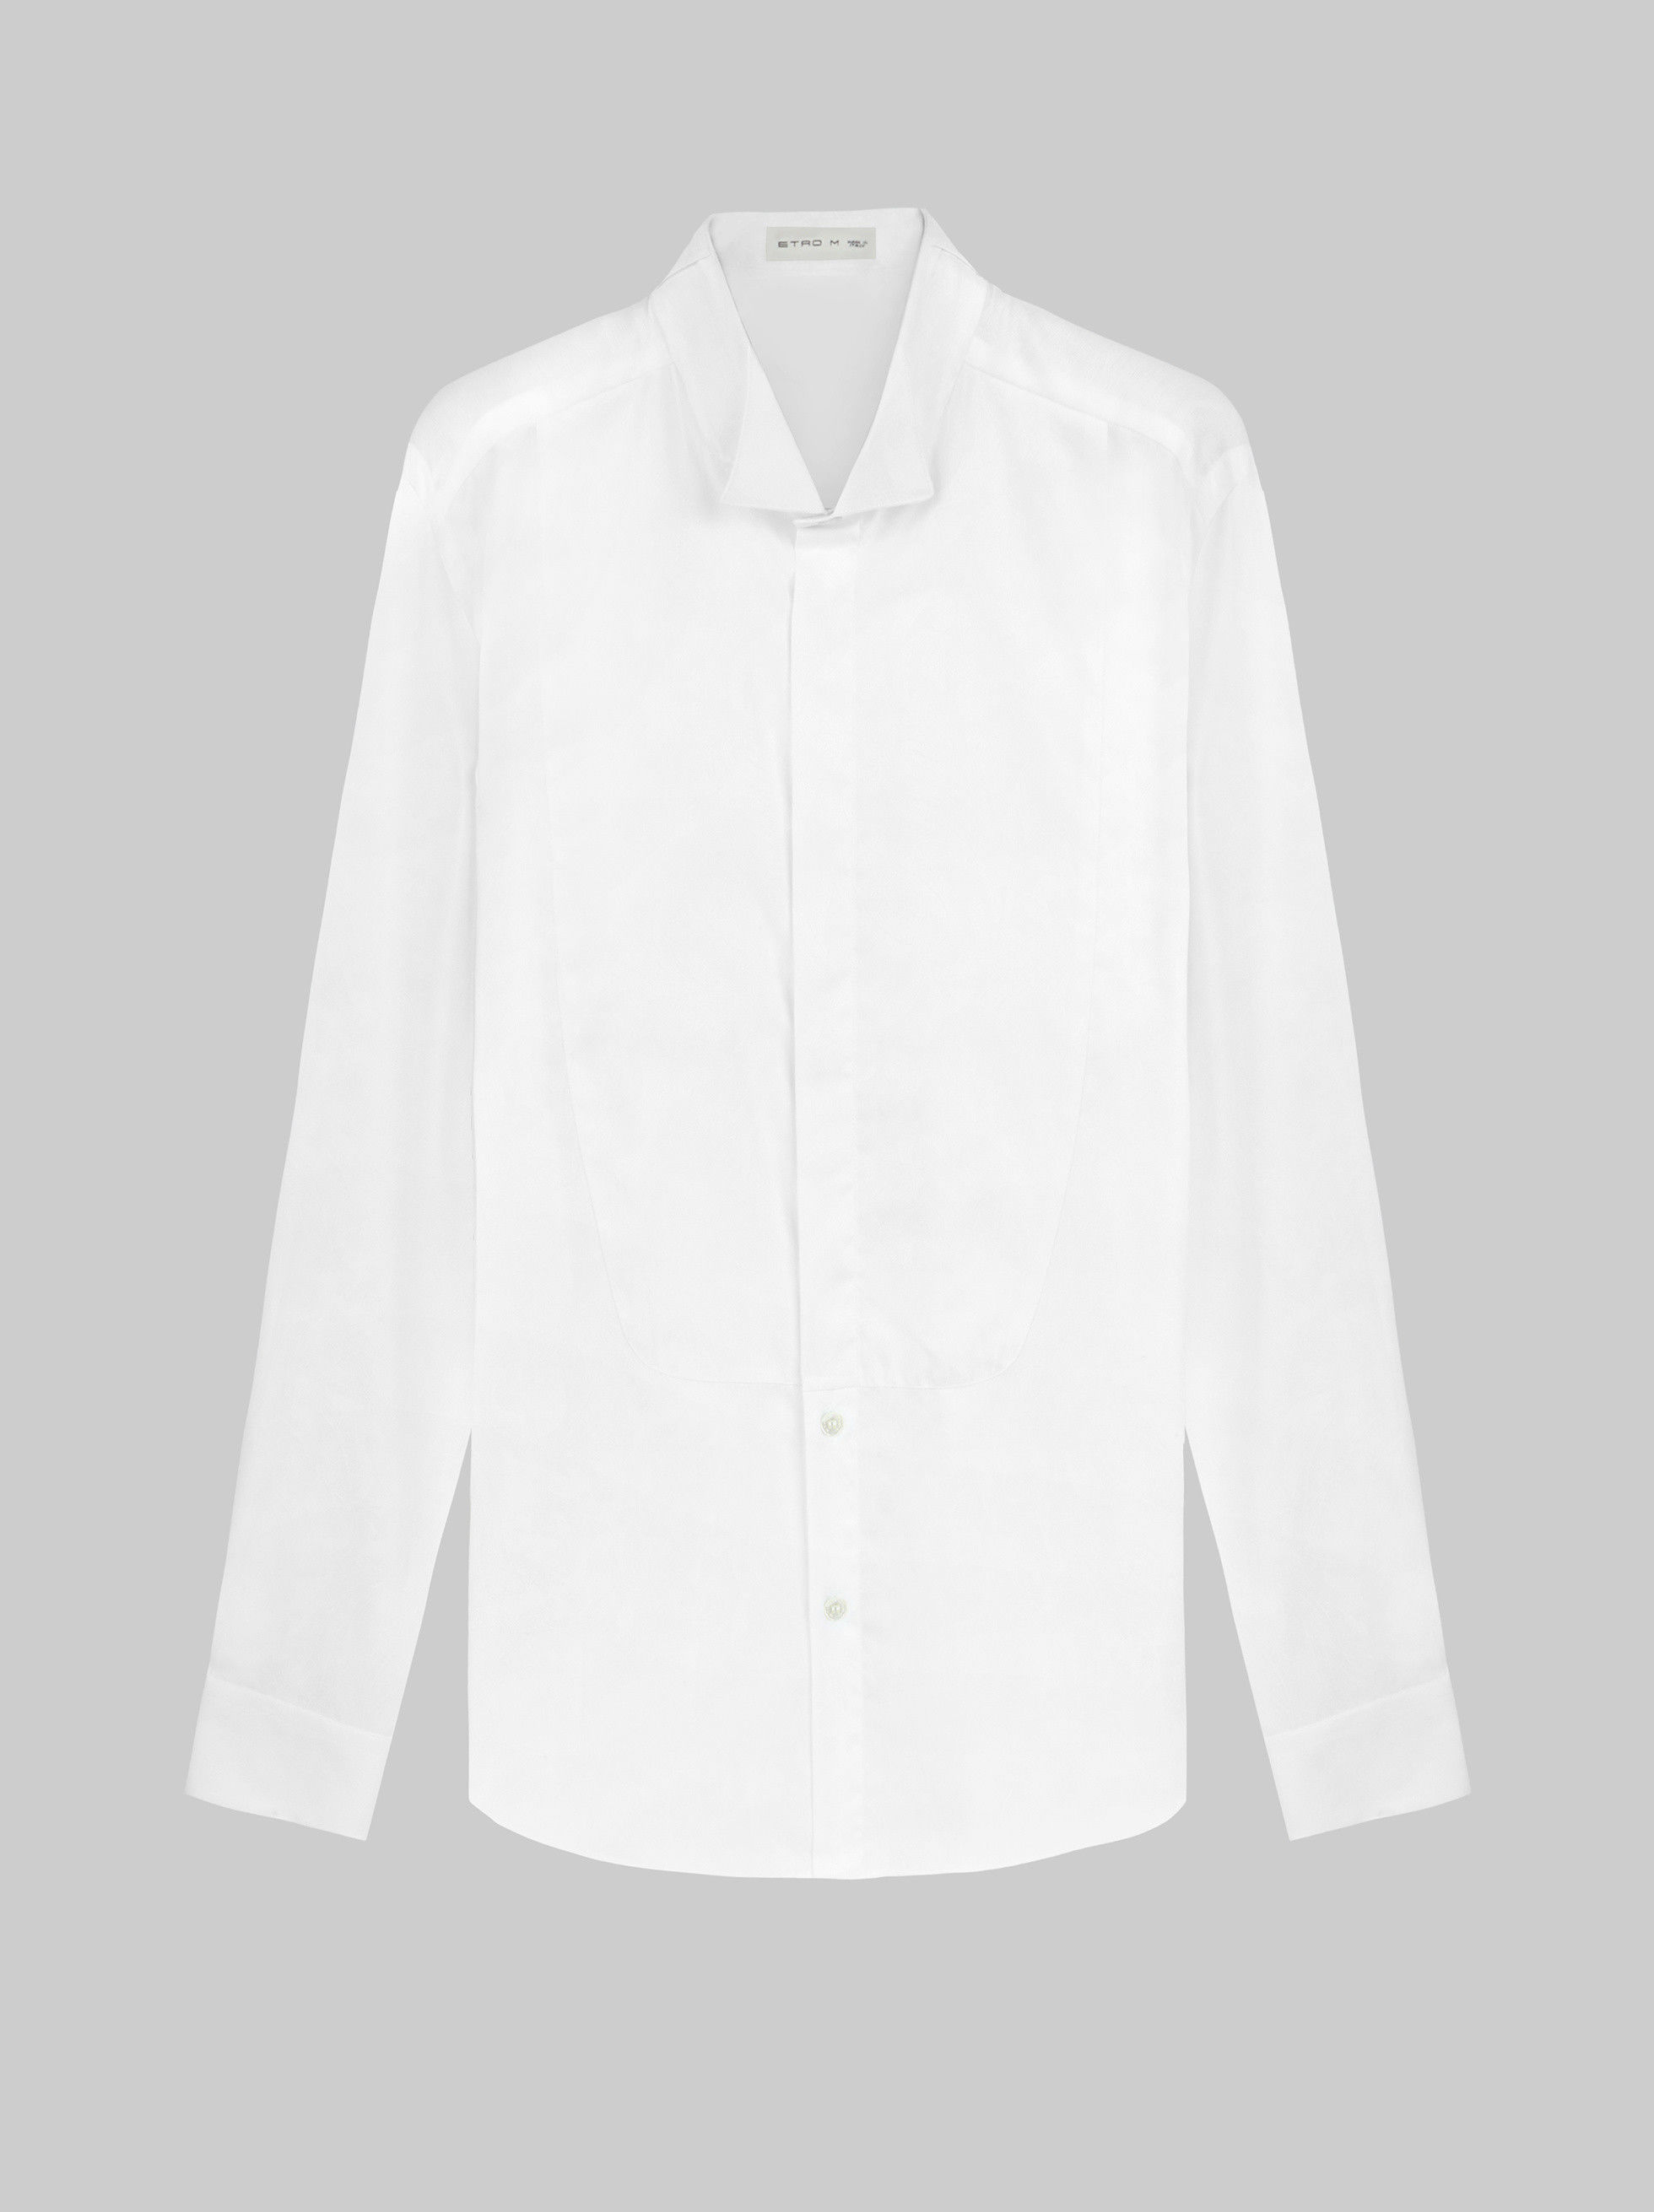 JACQUARD FORMAL DRESS SHIRT